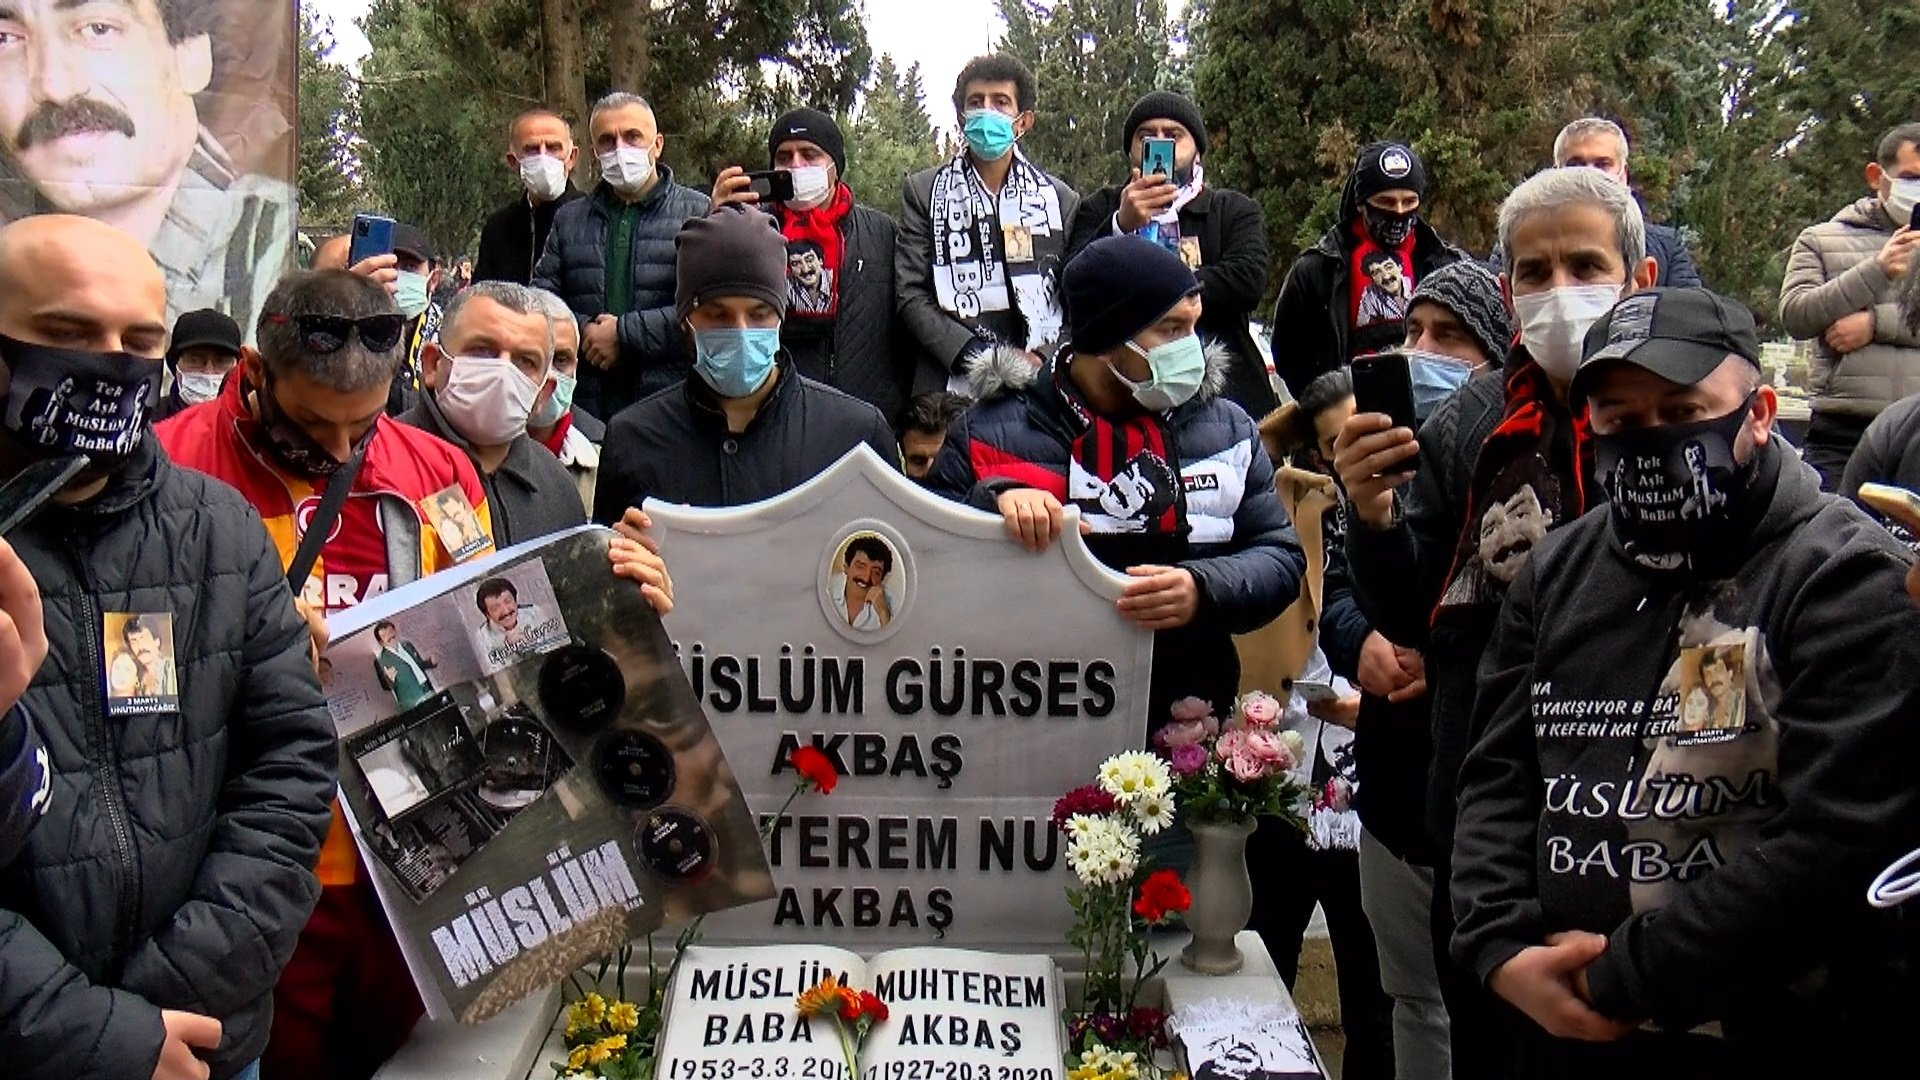 Fans of Müslüm Gürses commemorate the singer at his grave in Zincirlikuyu Cemetery, Istanbul, Turkey, March 3, 2021. (DHA PHOTO)